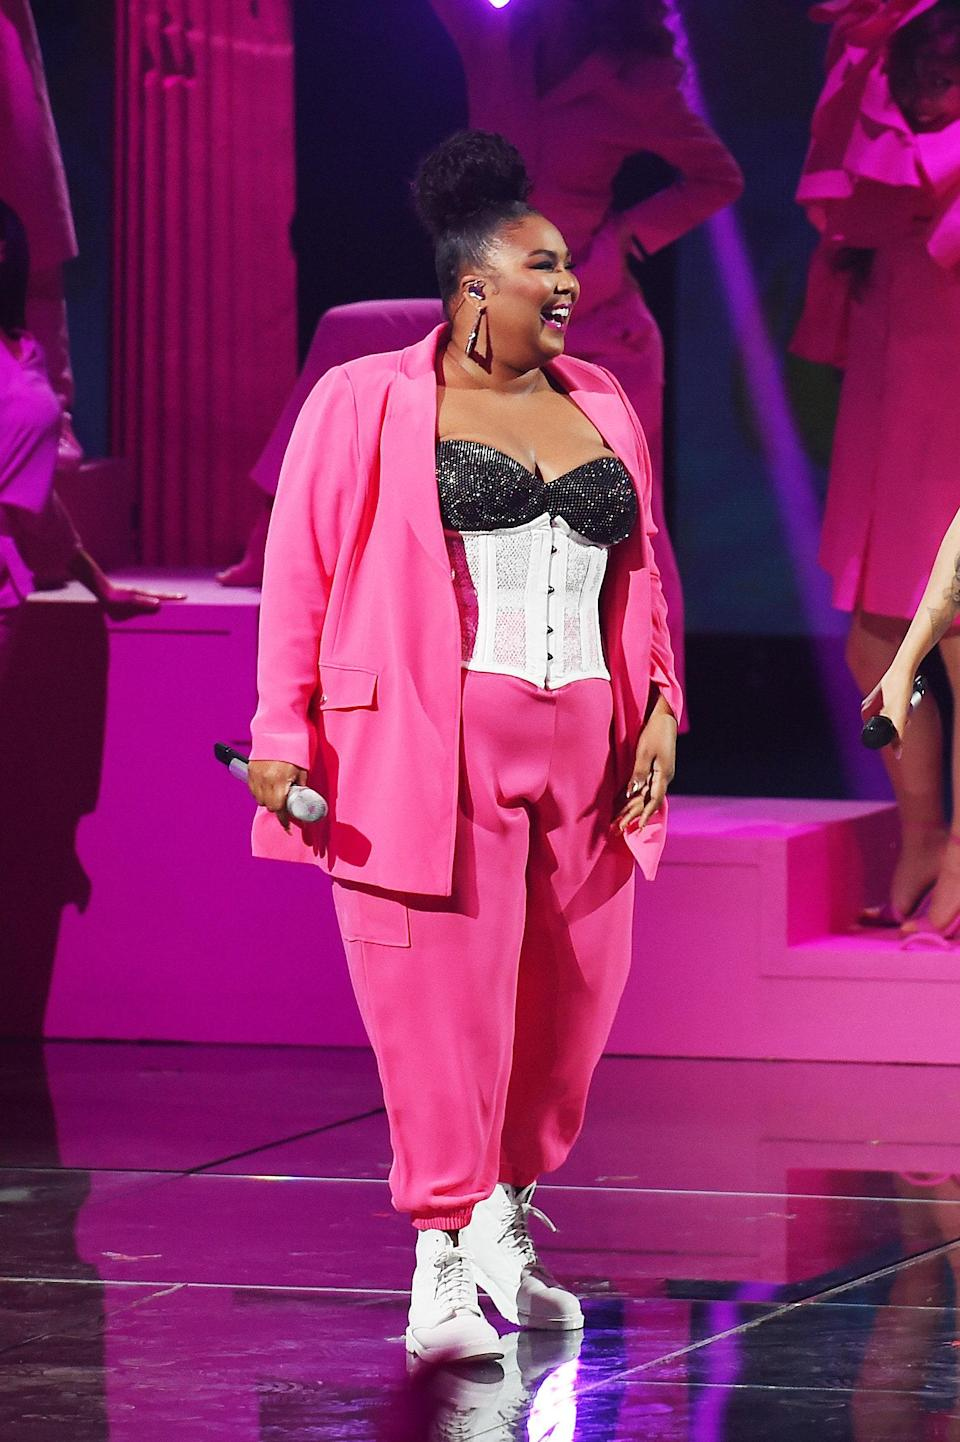 Speaking of corsets and pink. Lizzo's stage outfits have just as much presence as her music. At <em>The Voice of Italy</em>, she sported a hot pink power suit and her all-time favorite white Dr. Martens.